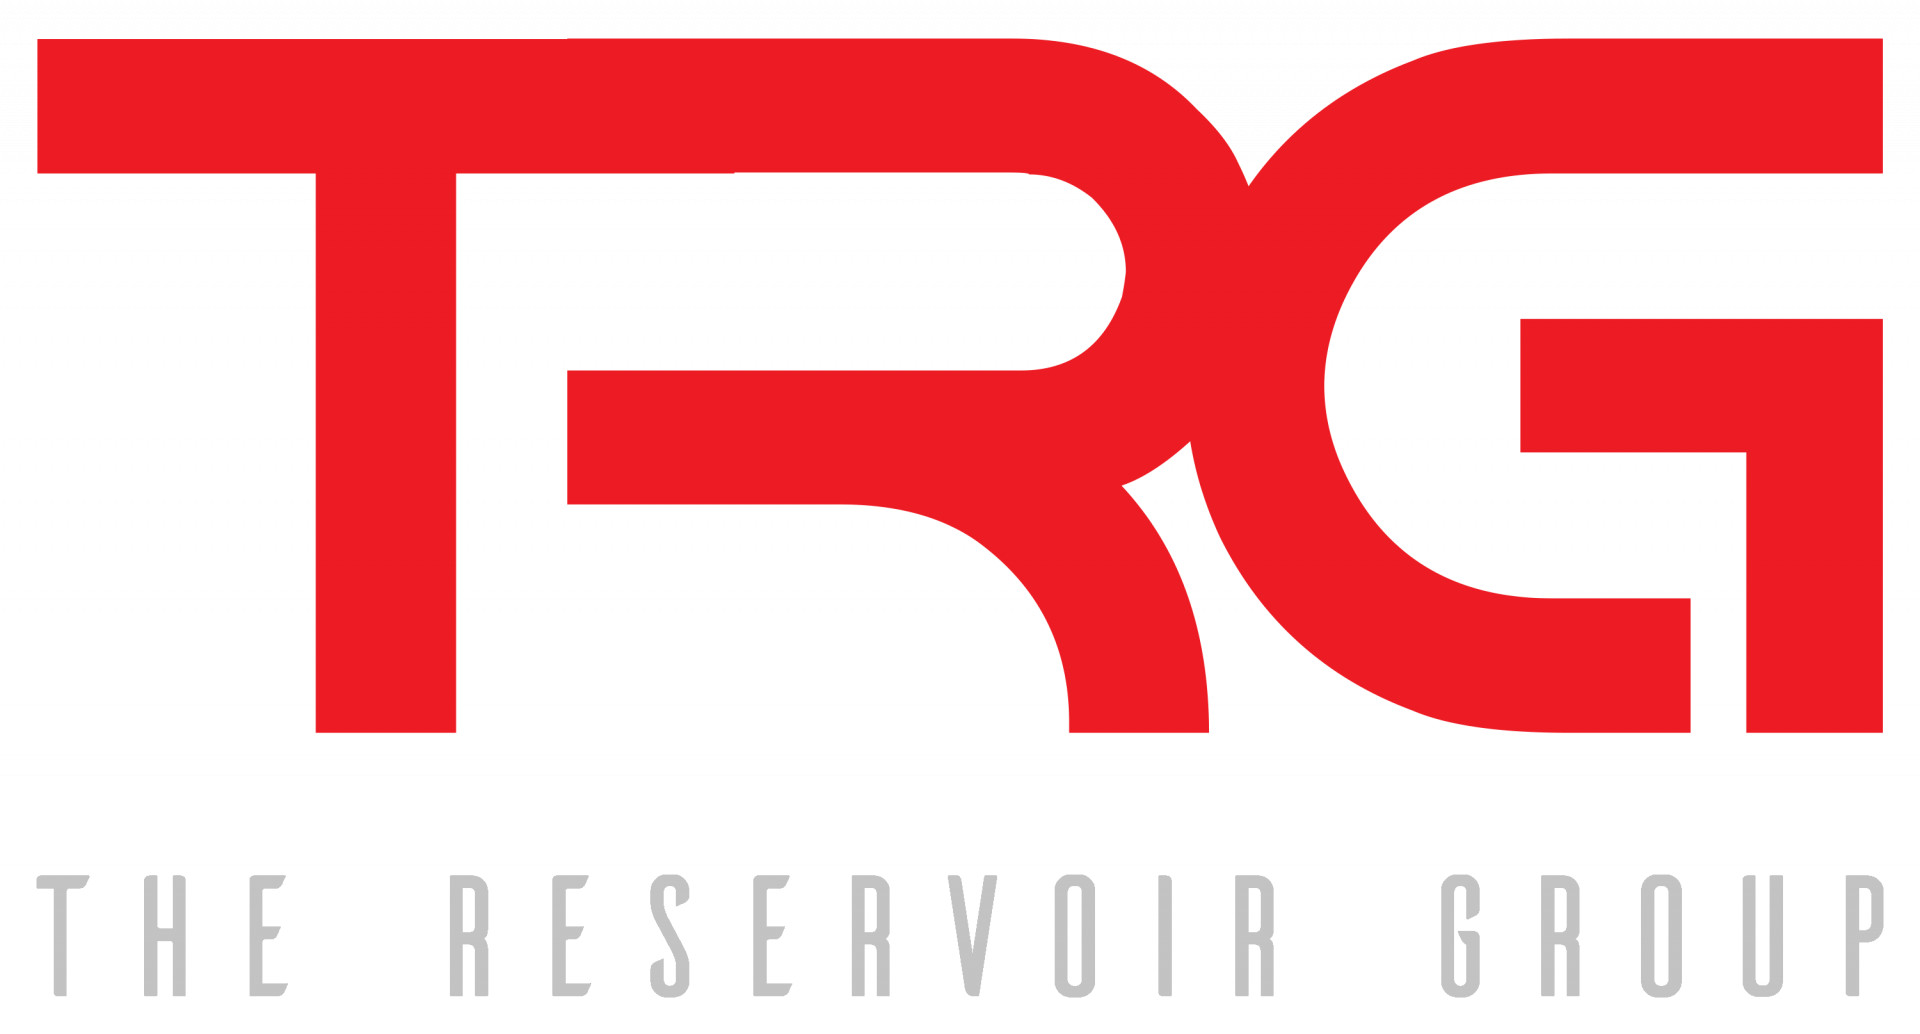 The Reservoir Group logo